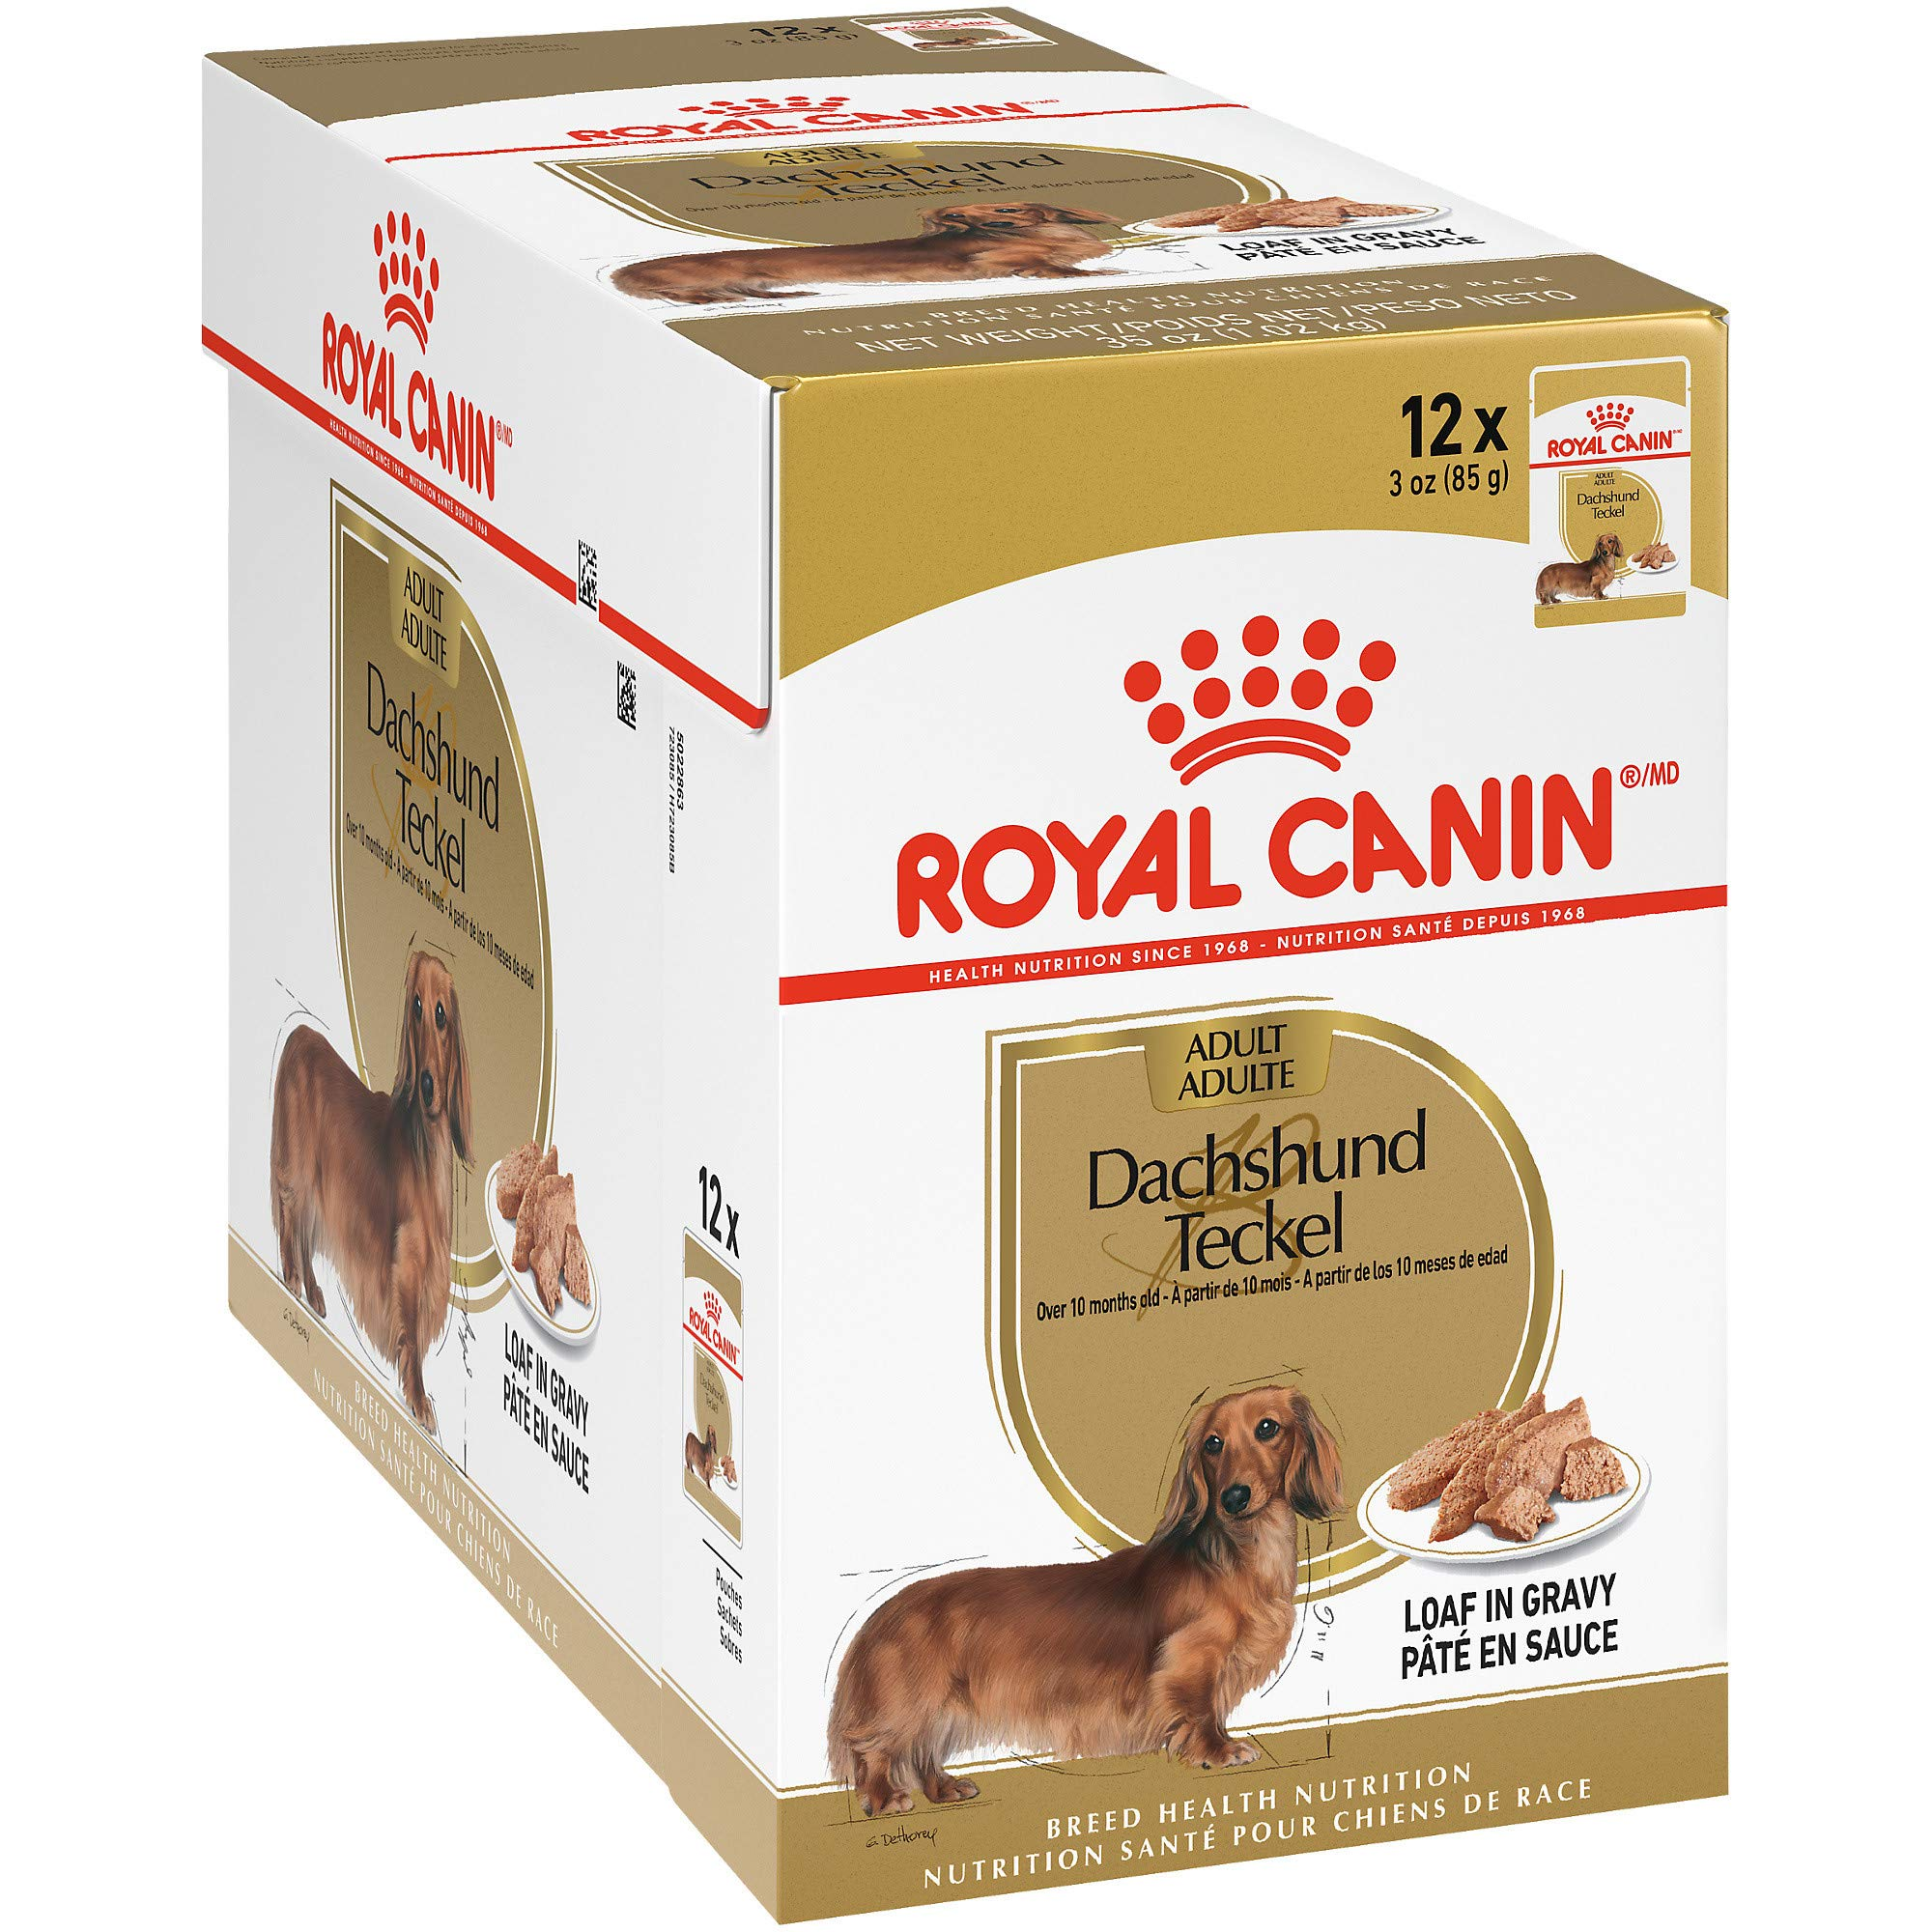 Royal Canin Breed Health Nutrition Dachshund Loaf in Gravy Pouch Dog Food, 3 oz Pouch (Pack of 12) by Royal Canin